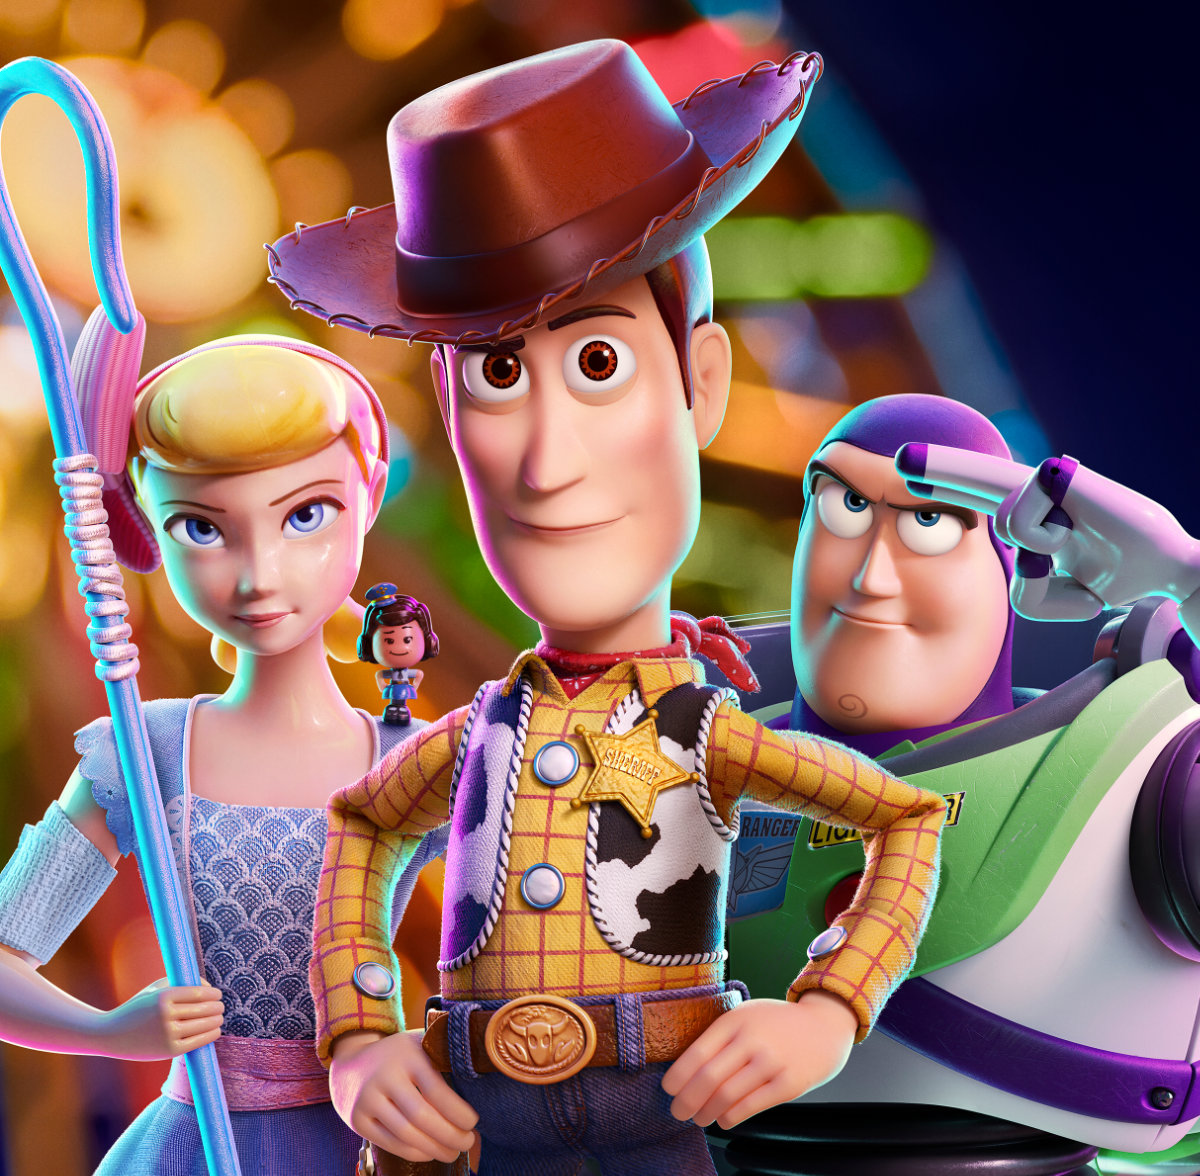 Toy Story 4 characters